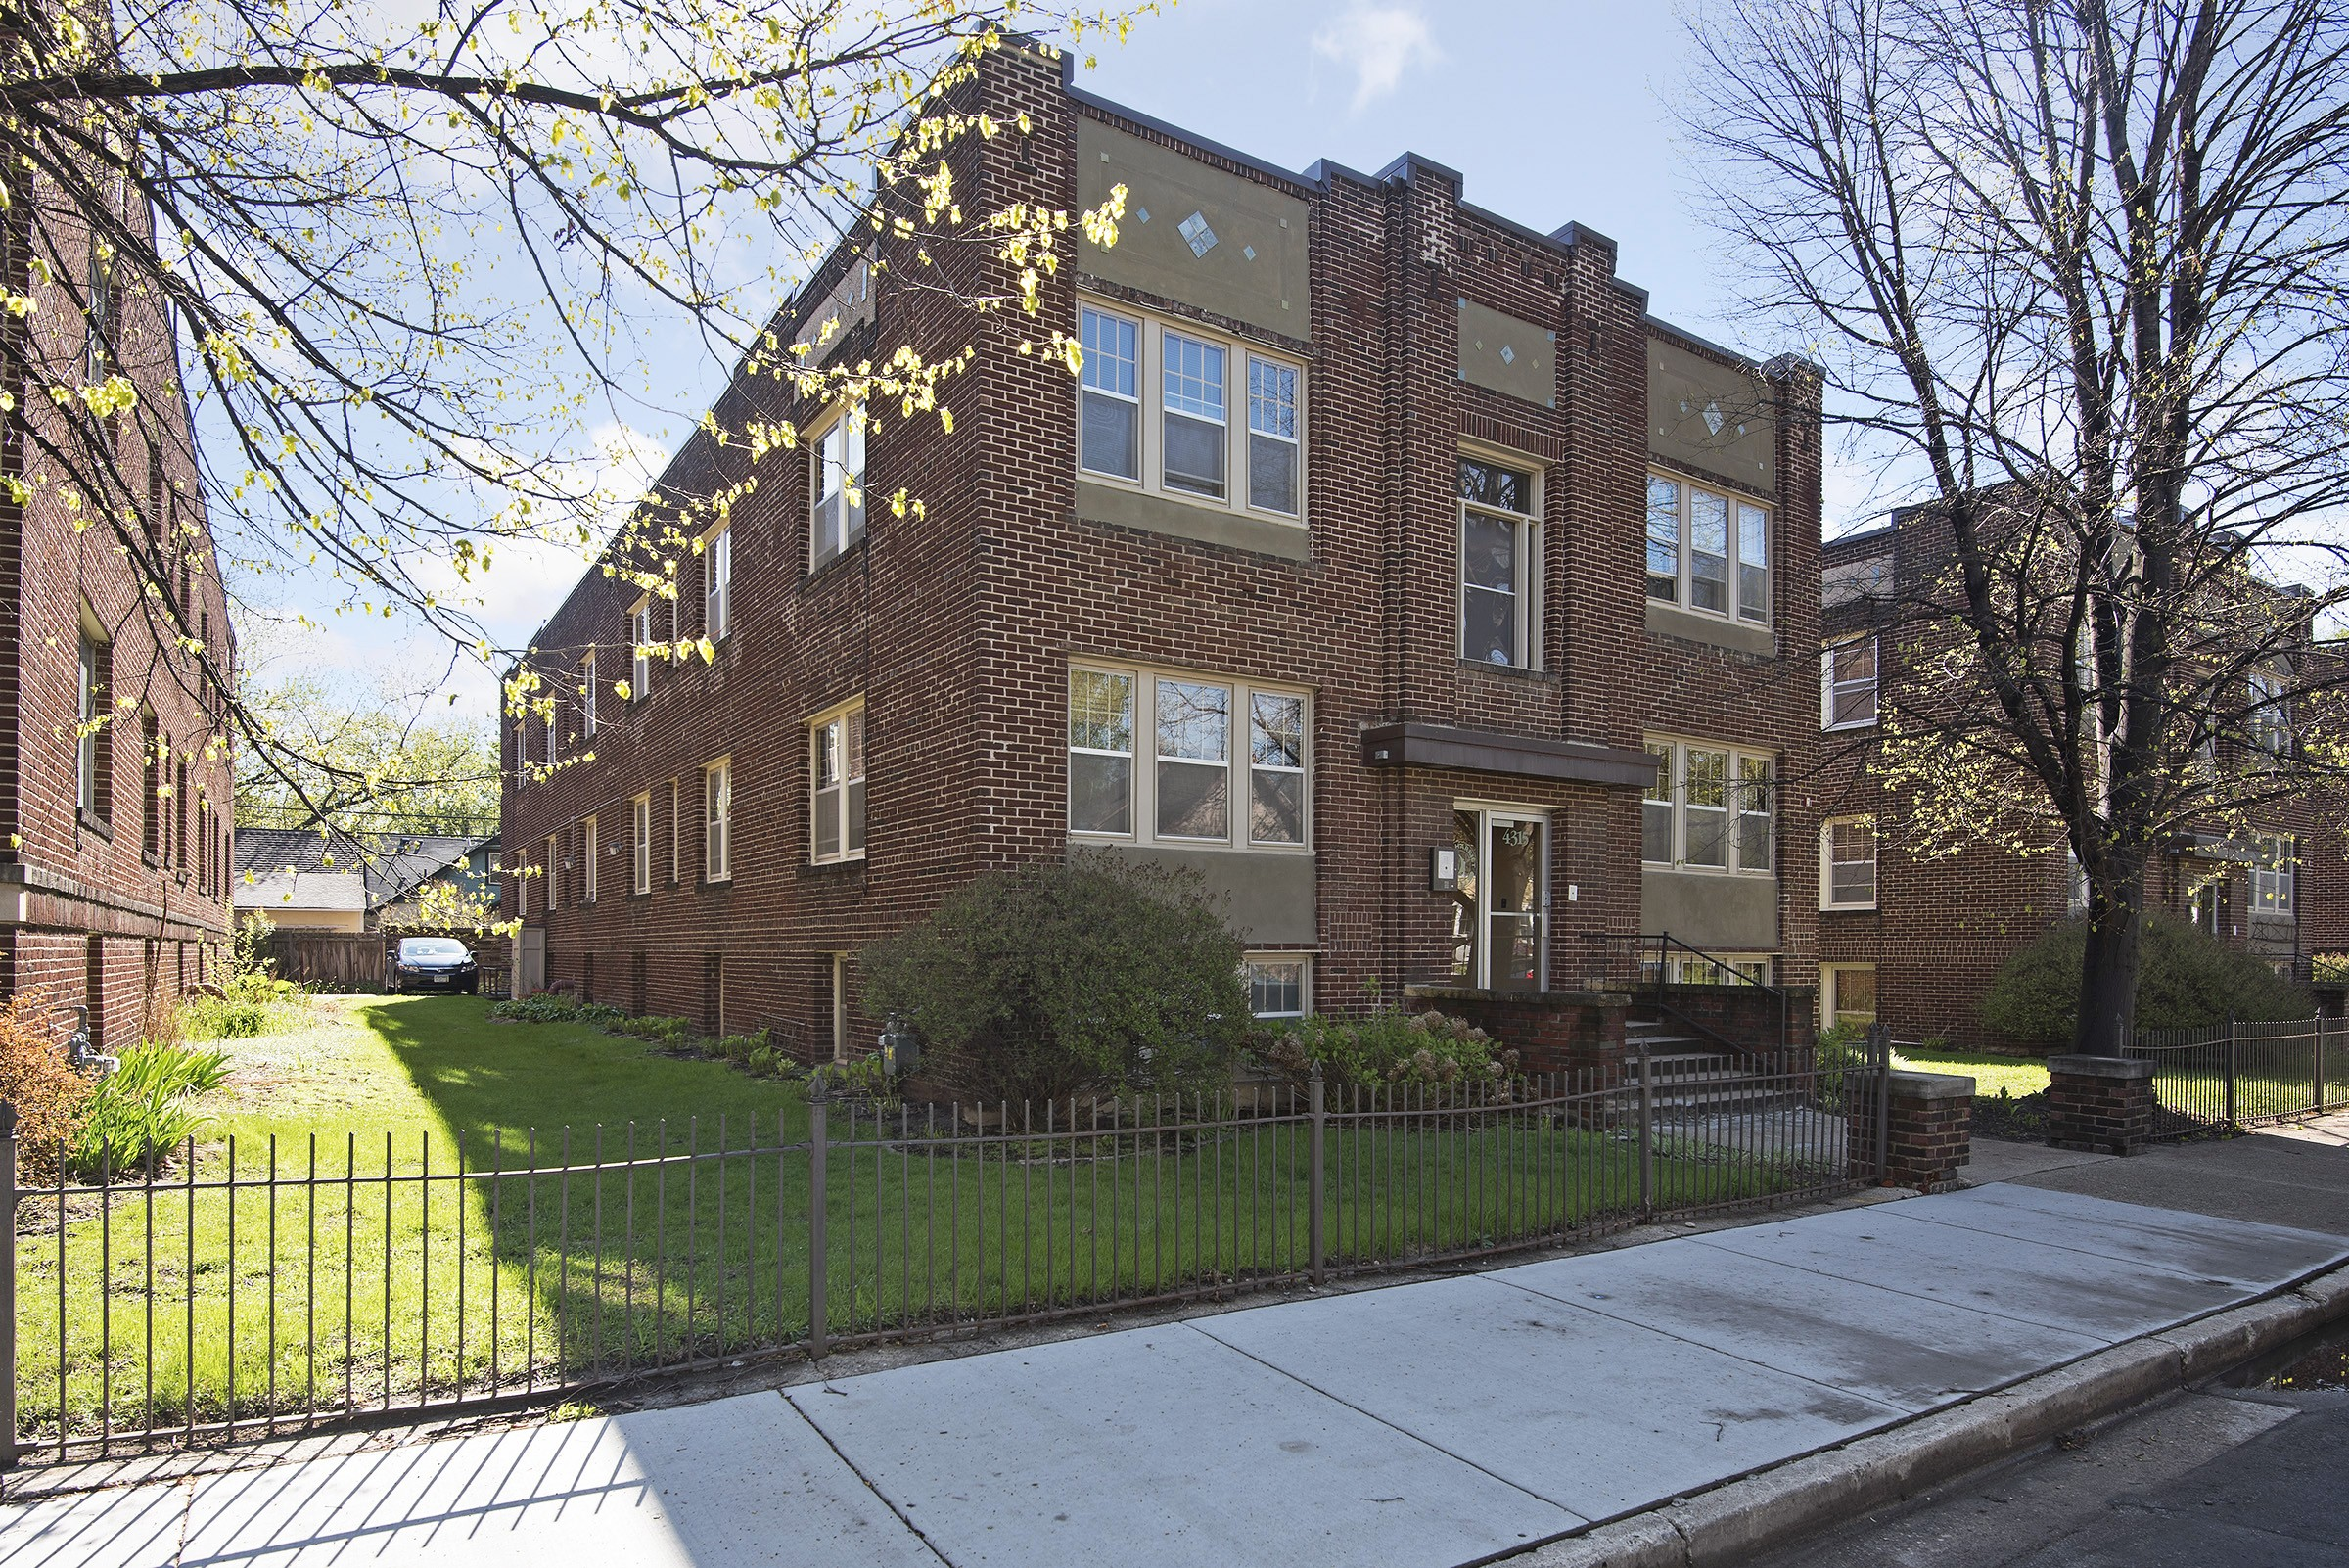 Townhouse for Sale at 4315 Bryant Ave S #B102 4315 Bryant Avenue S #B102 Minneapolis, Minnesota, 55409 United States